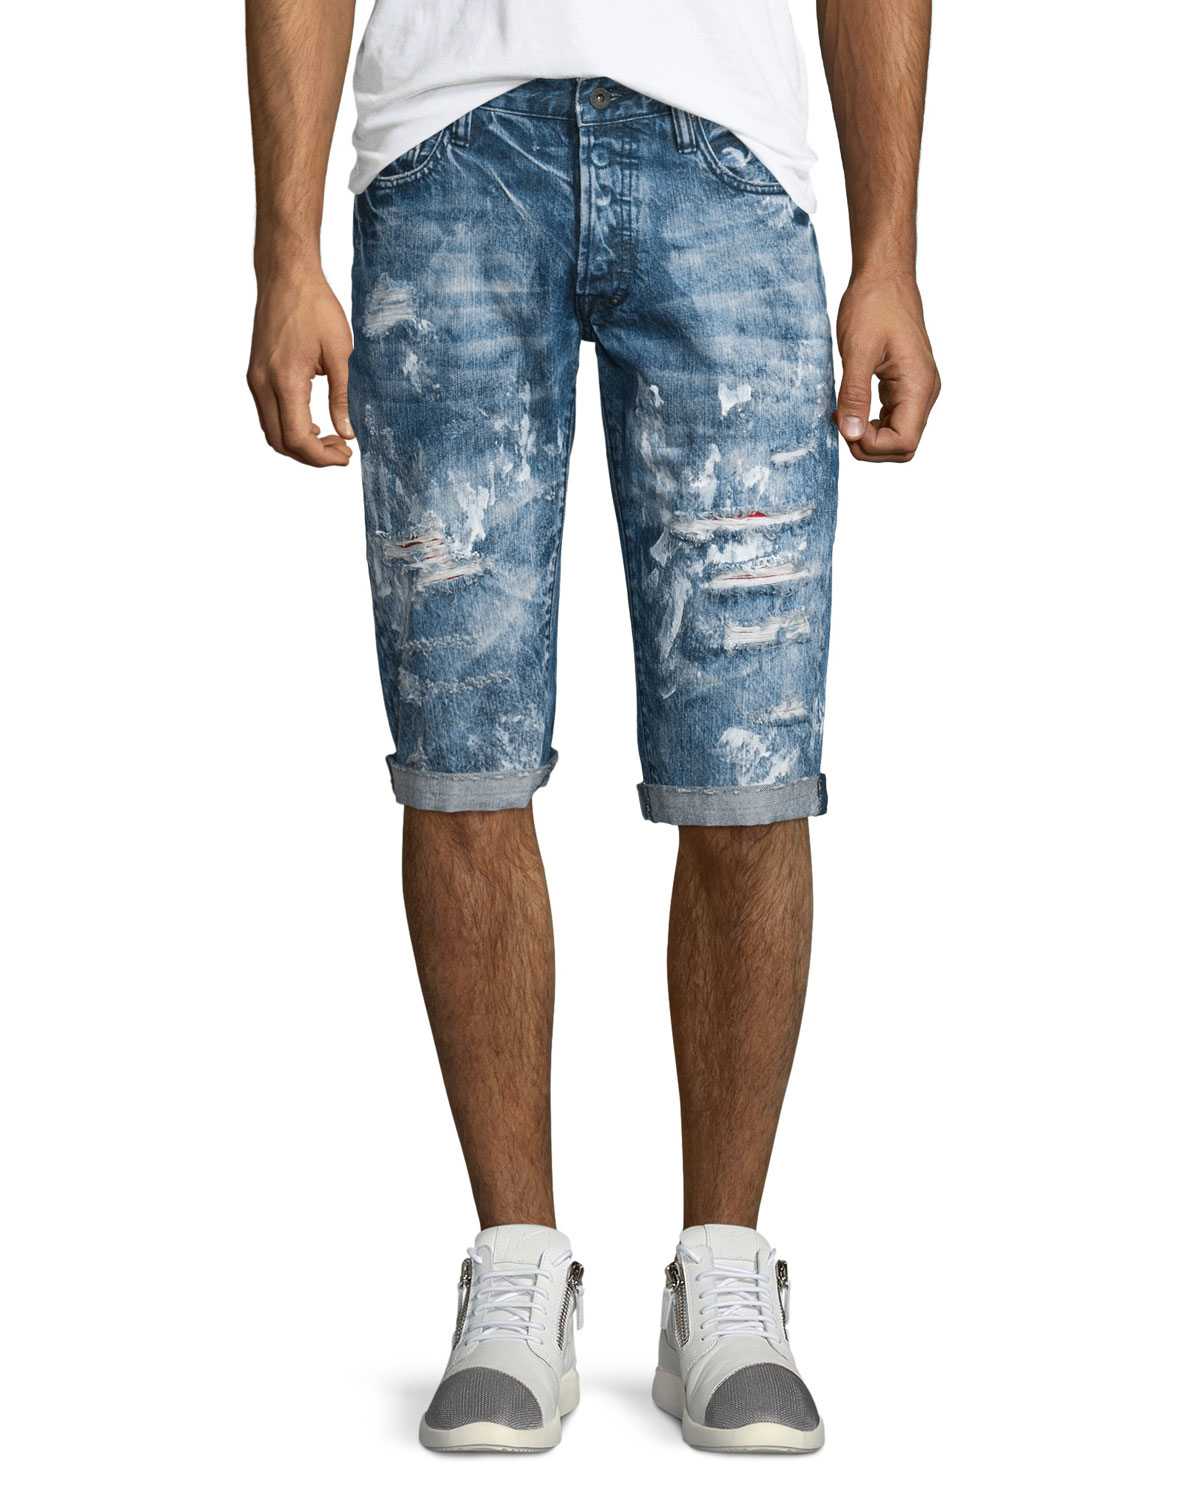 Men. New Arrivals +Plus Coming Soon To The Bitter End Distressed Jeans - Light Blue Wash. $ USD. QUICK VIEW. Bennie Boyfriend Jeans - Medium Blue Wash. $ USD. QUICK VIEW. No Sensor Distressed Denim Jeans - Medium Blue Wash. $ USD.